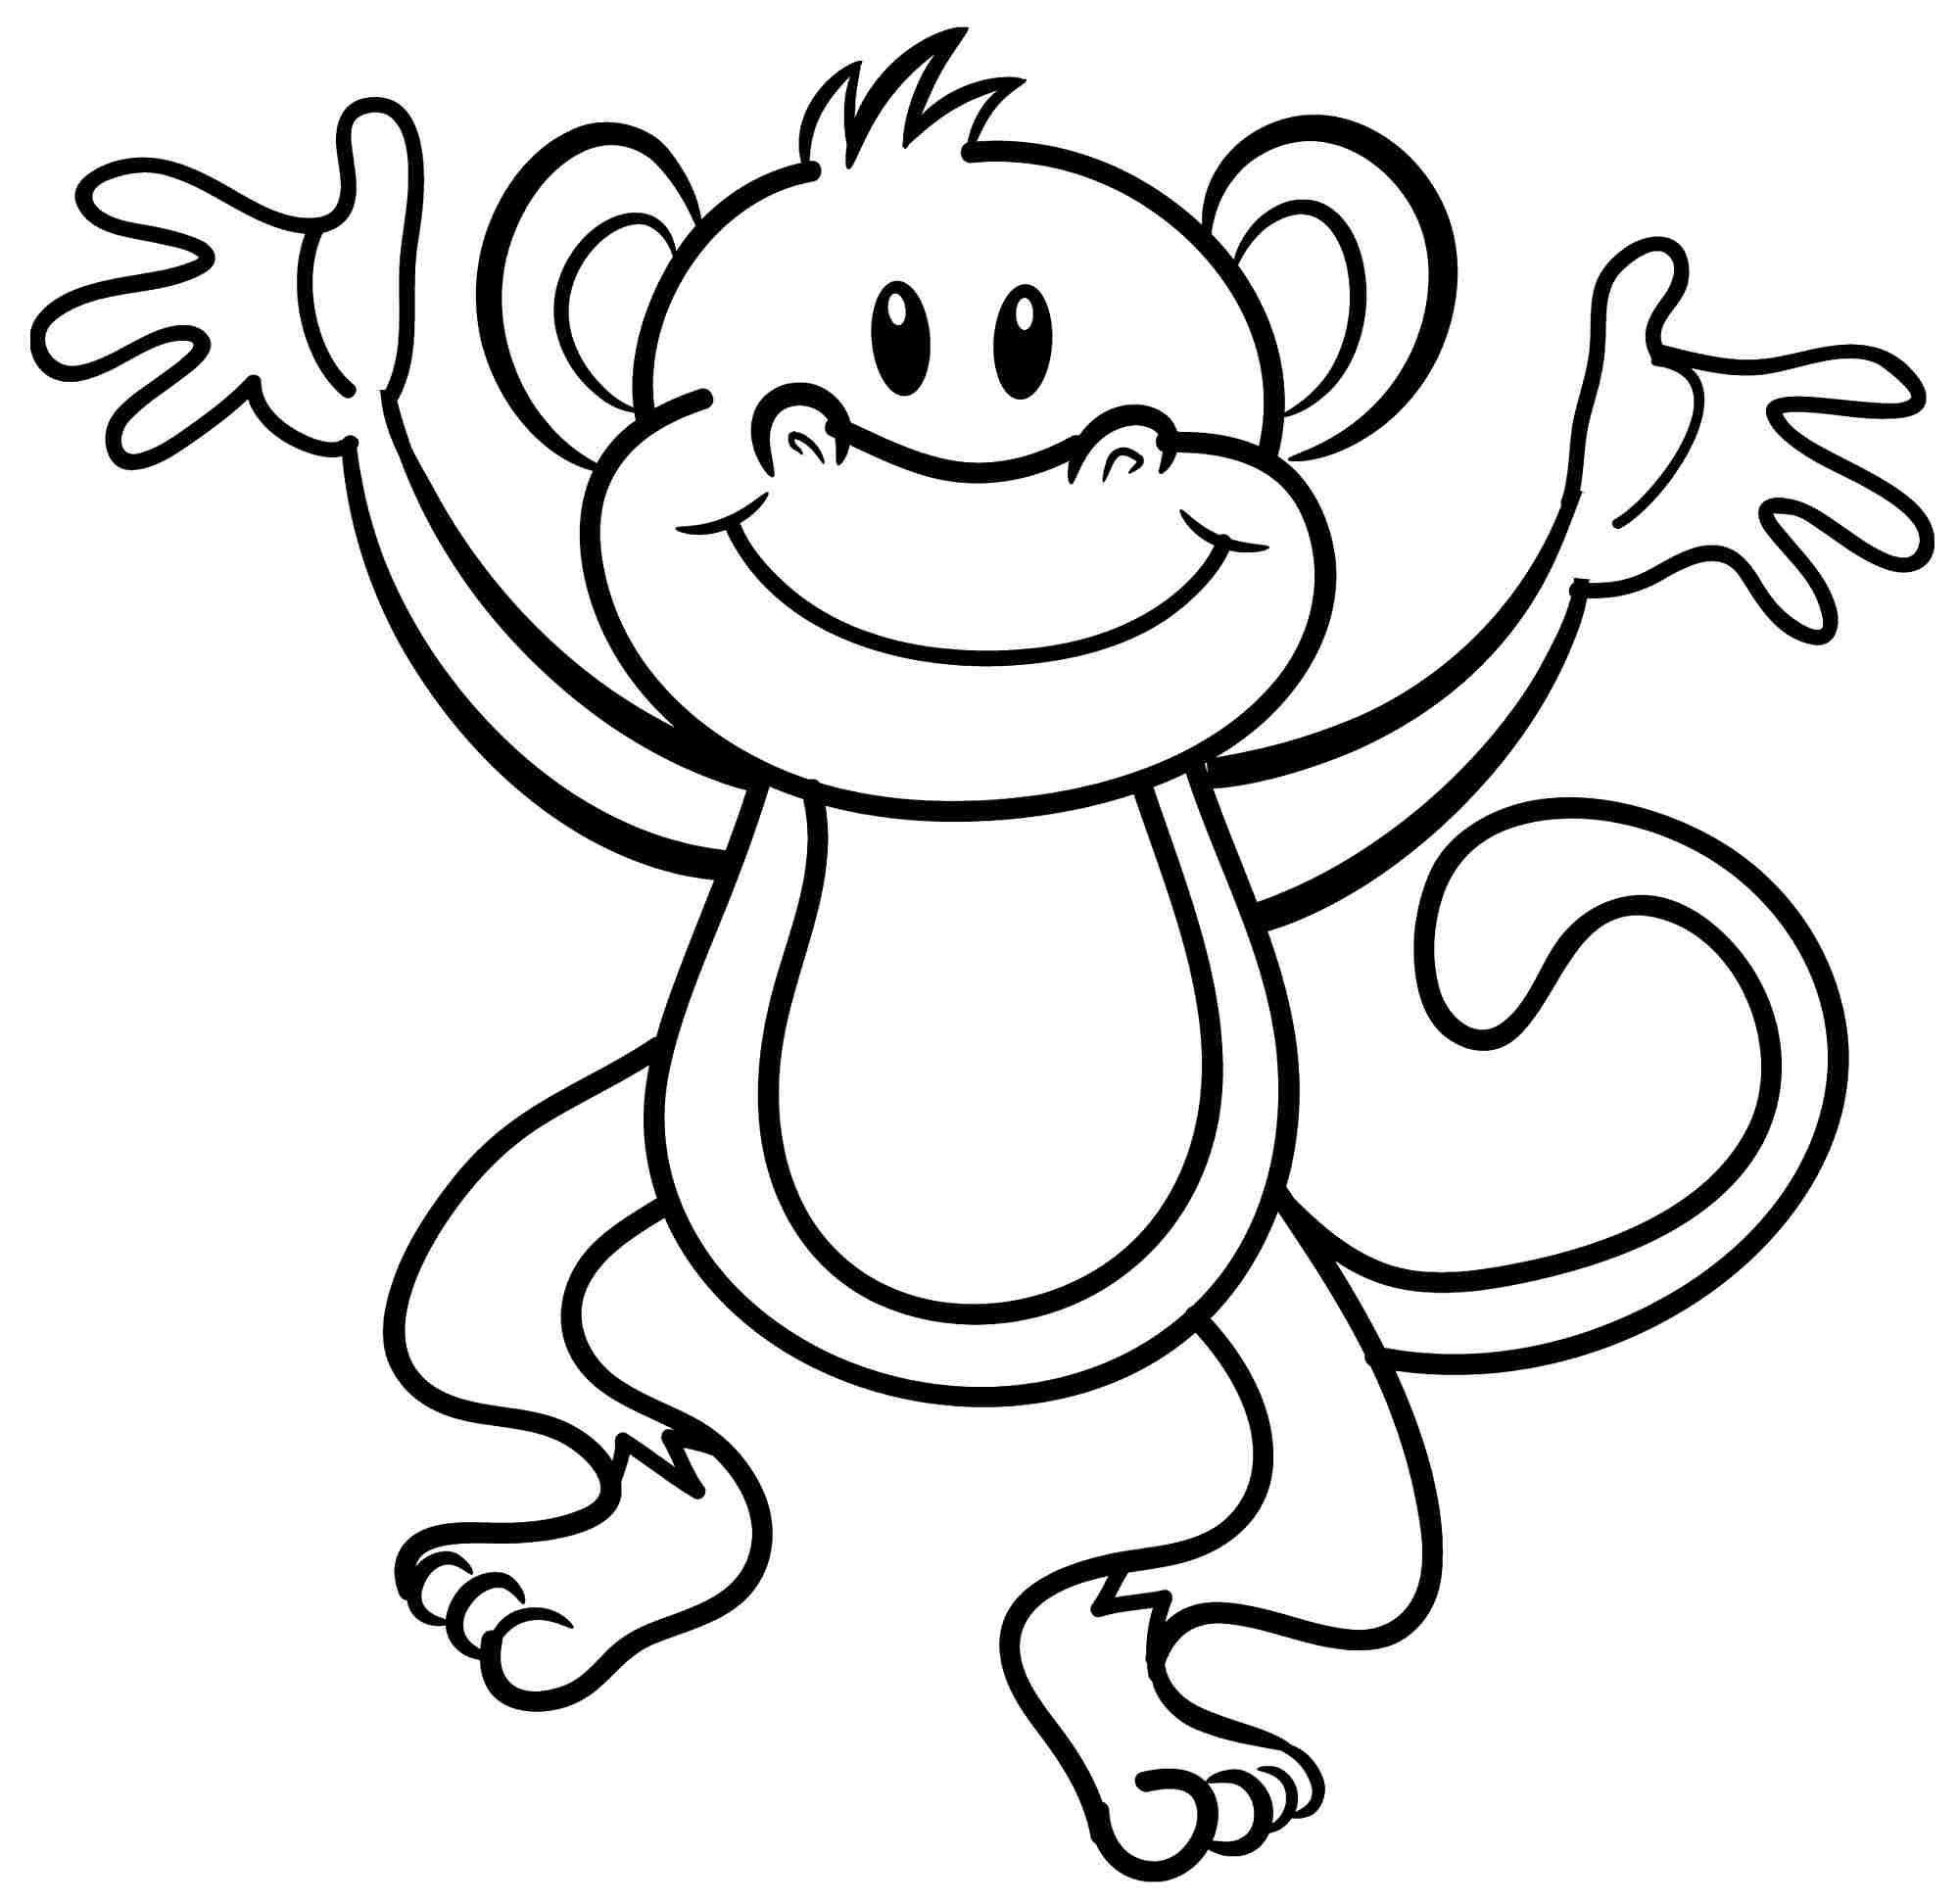 coloring pages of monkeys # 3